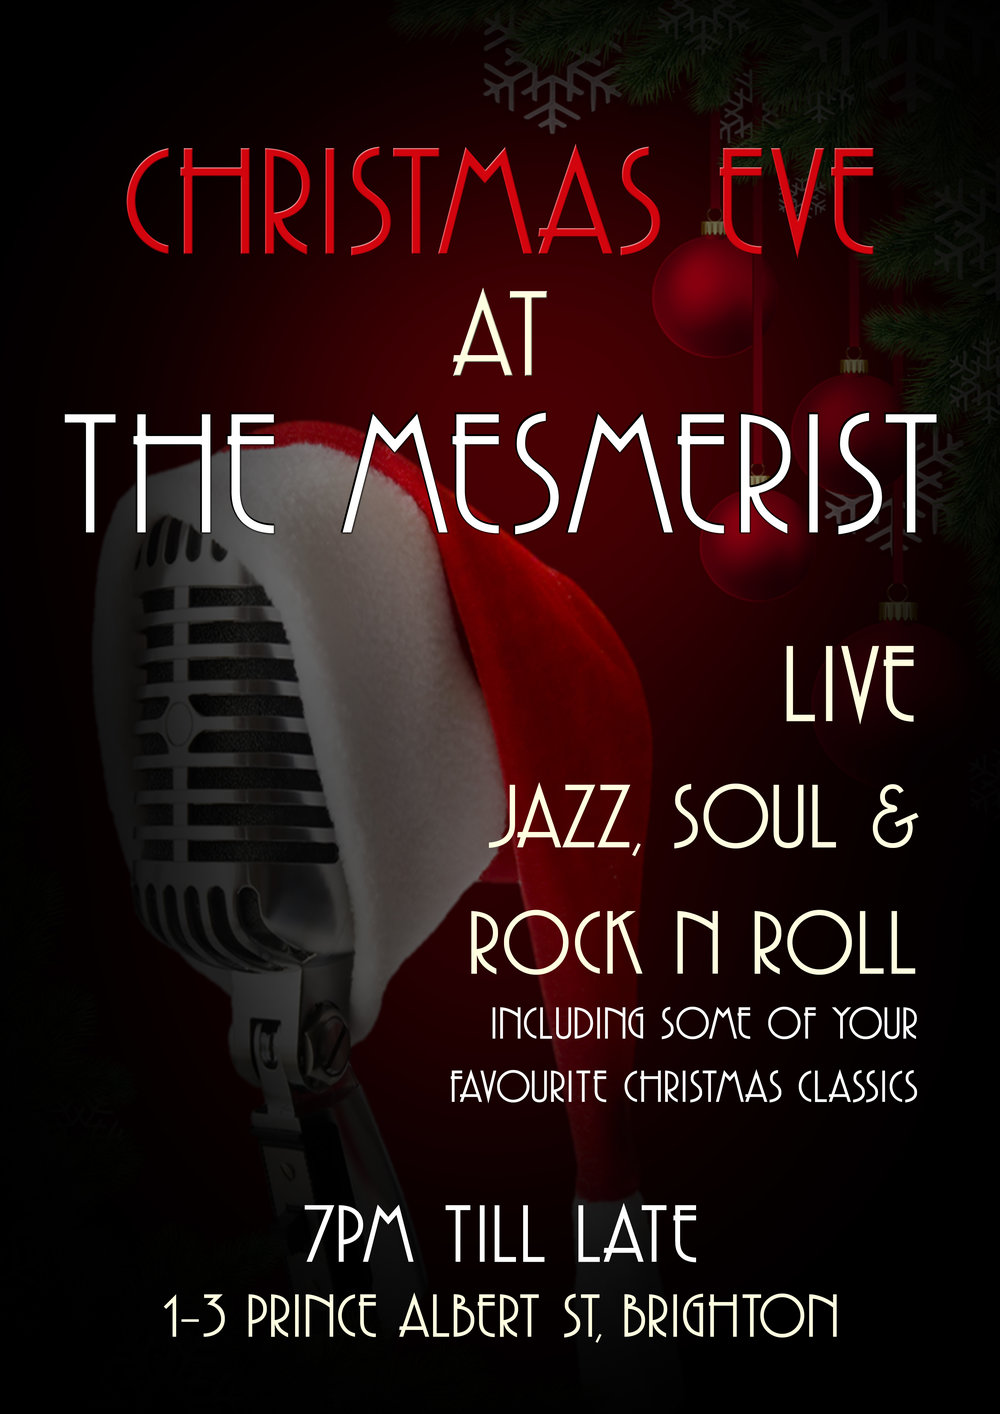 Christmas Eve at The Mesmerist.jpg